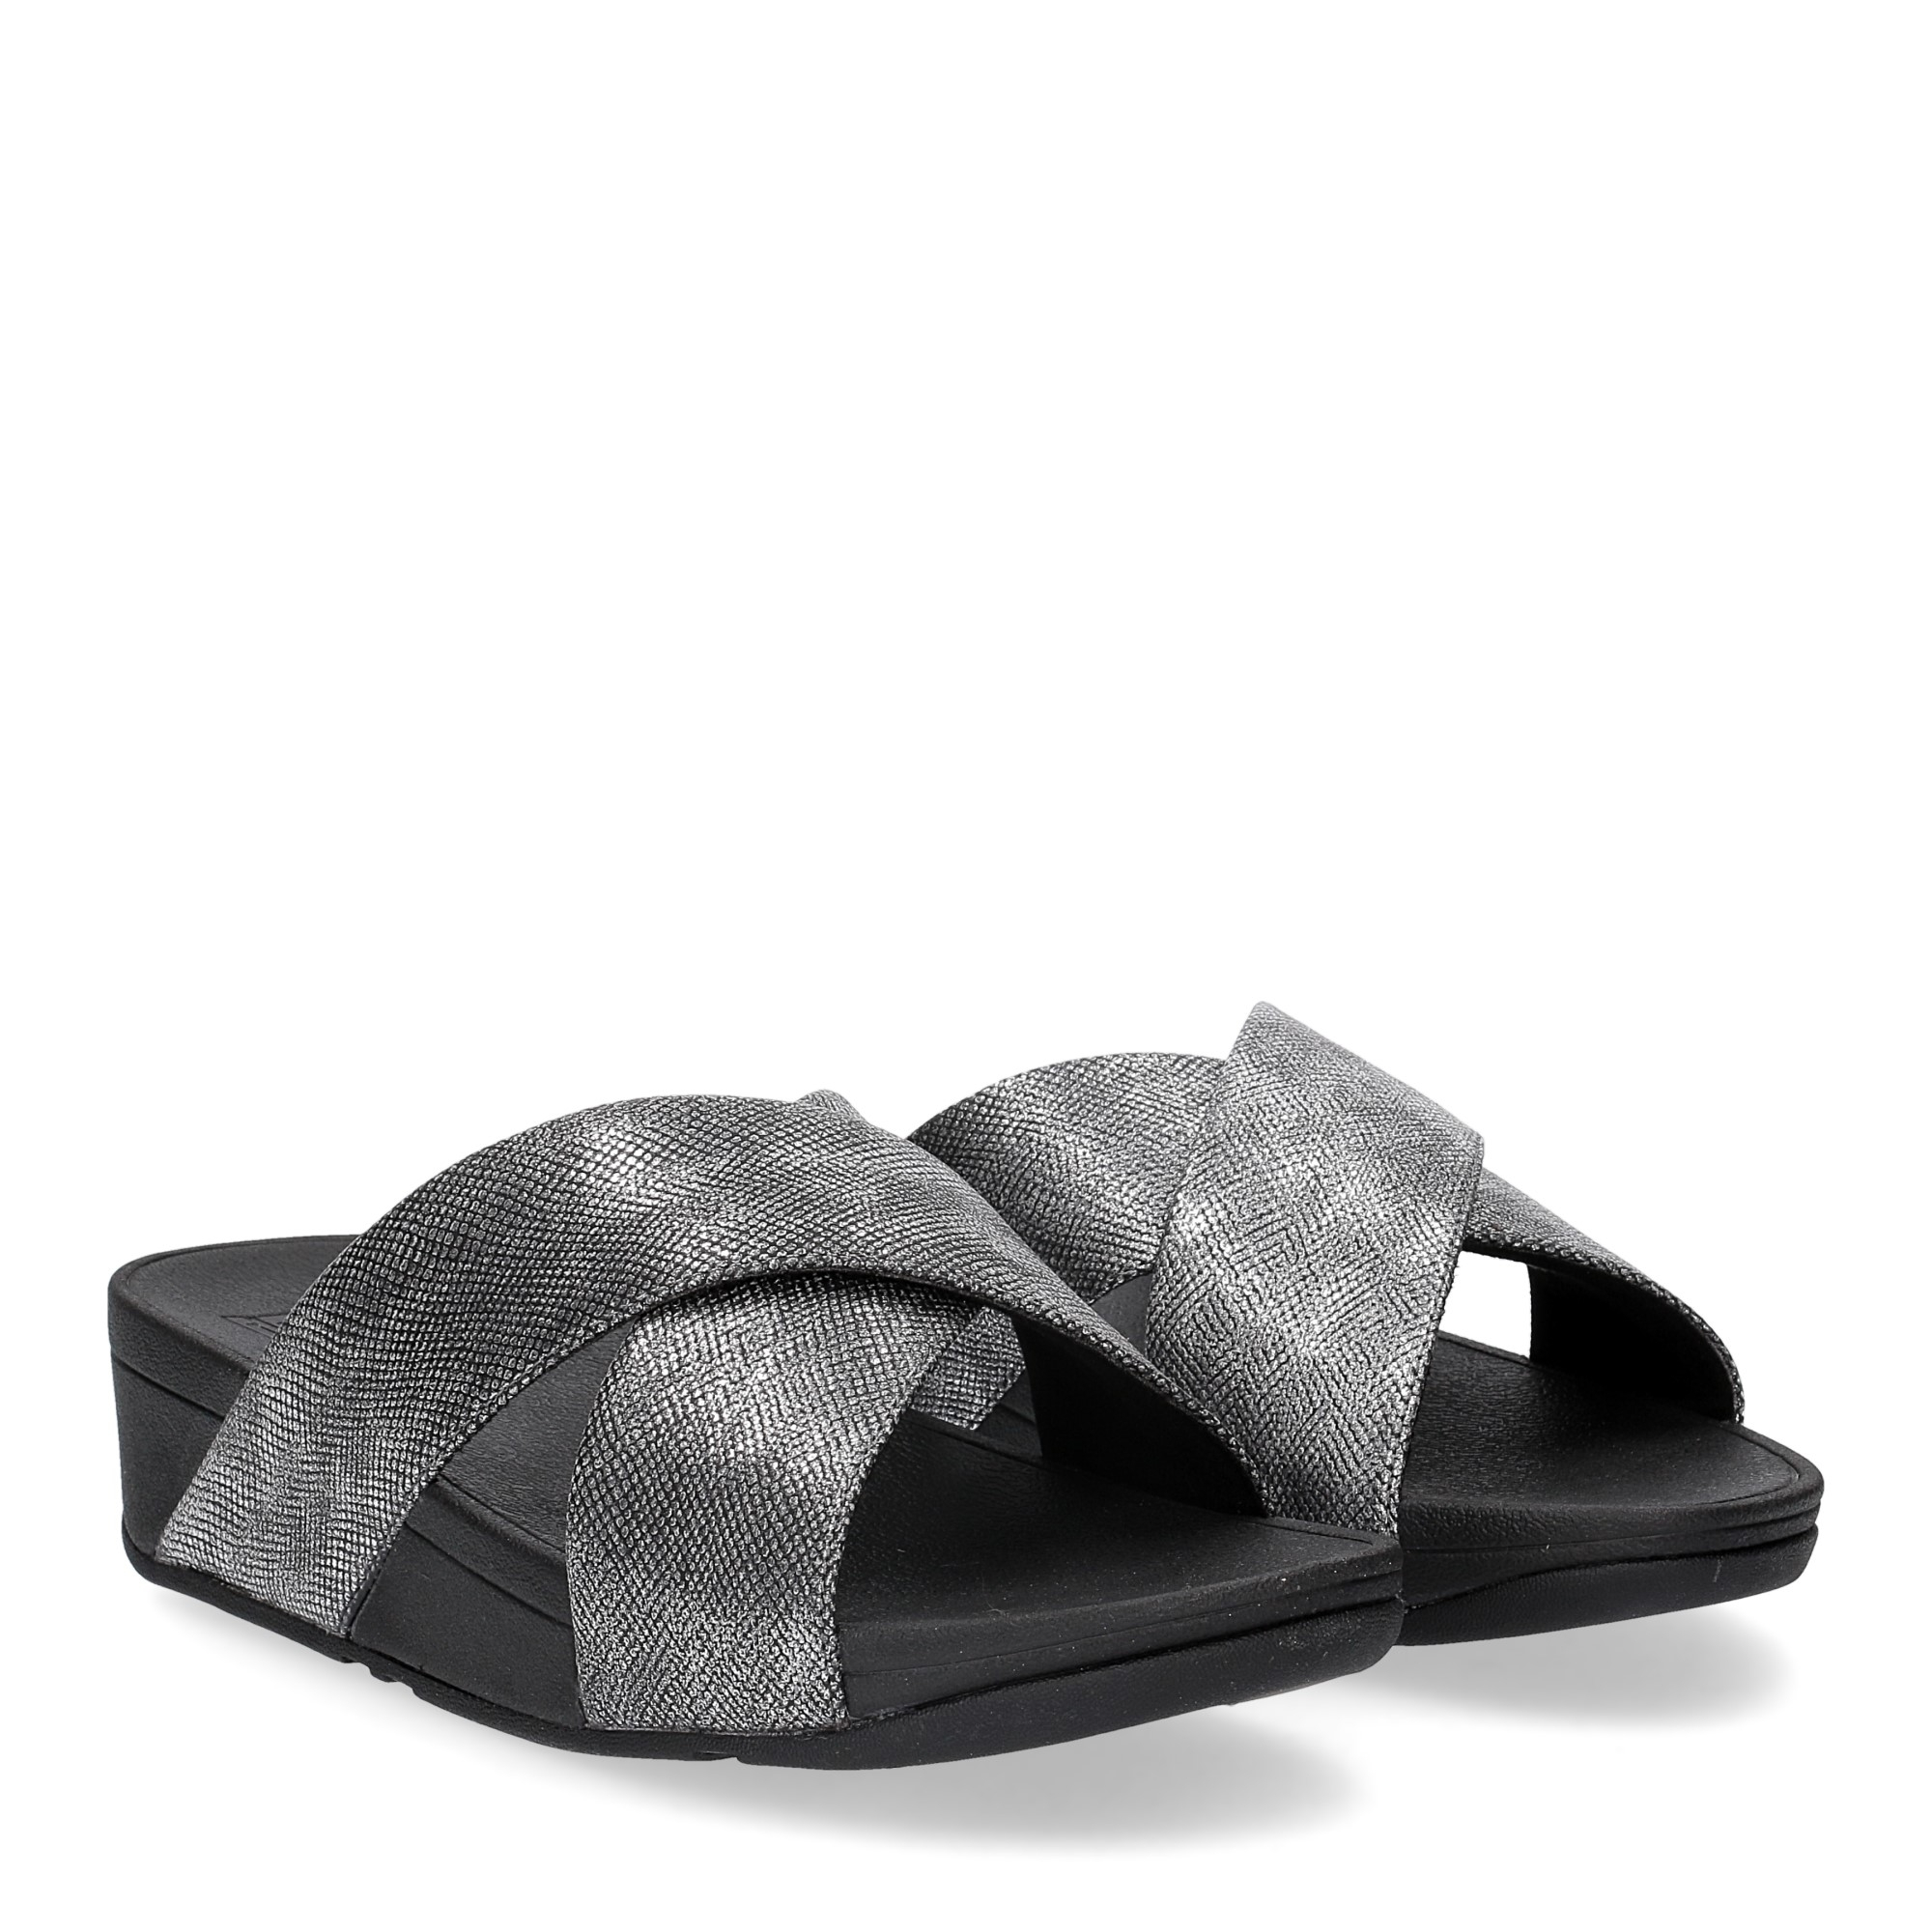 Fitflop Lulu Cross Back Strap Slide shimmer print black